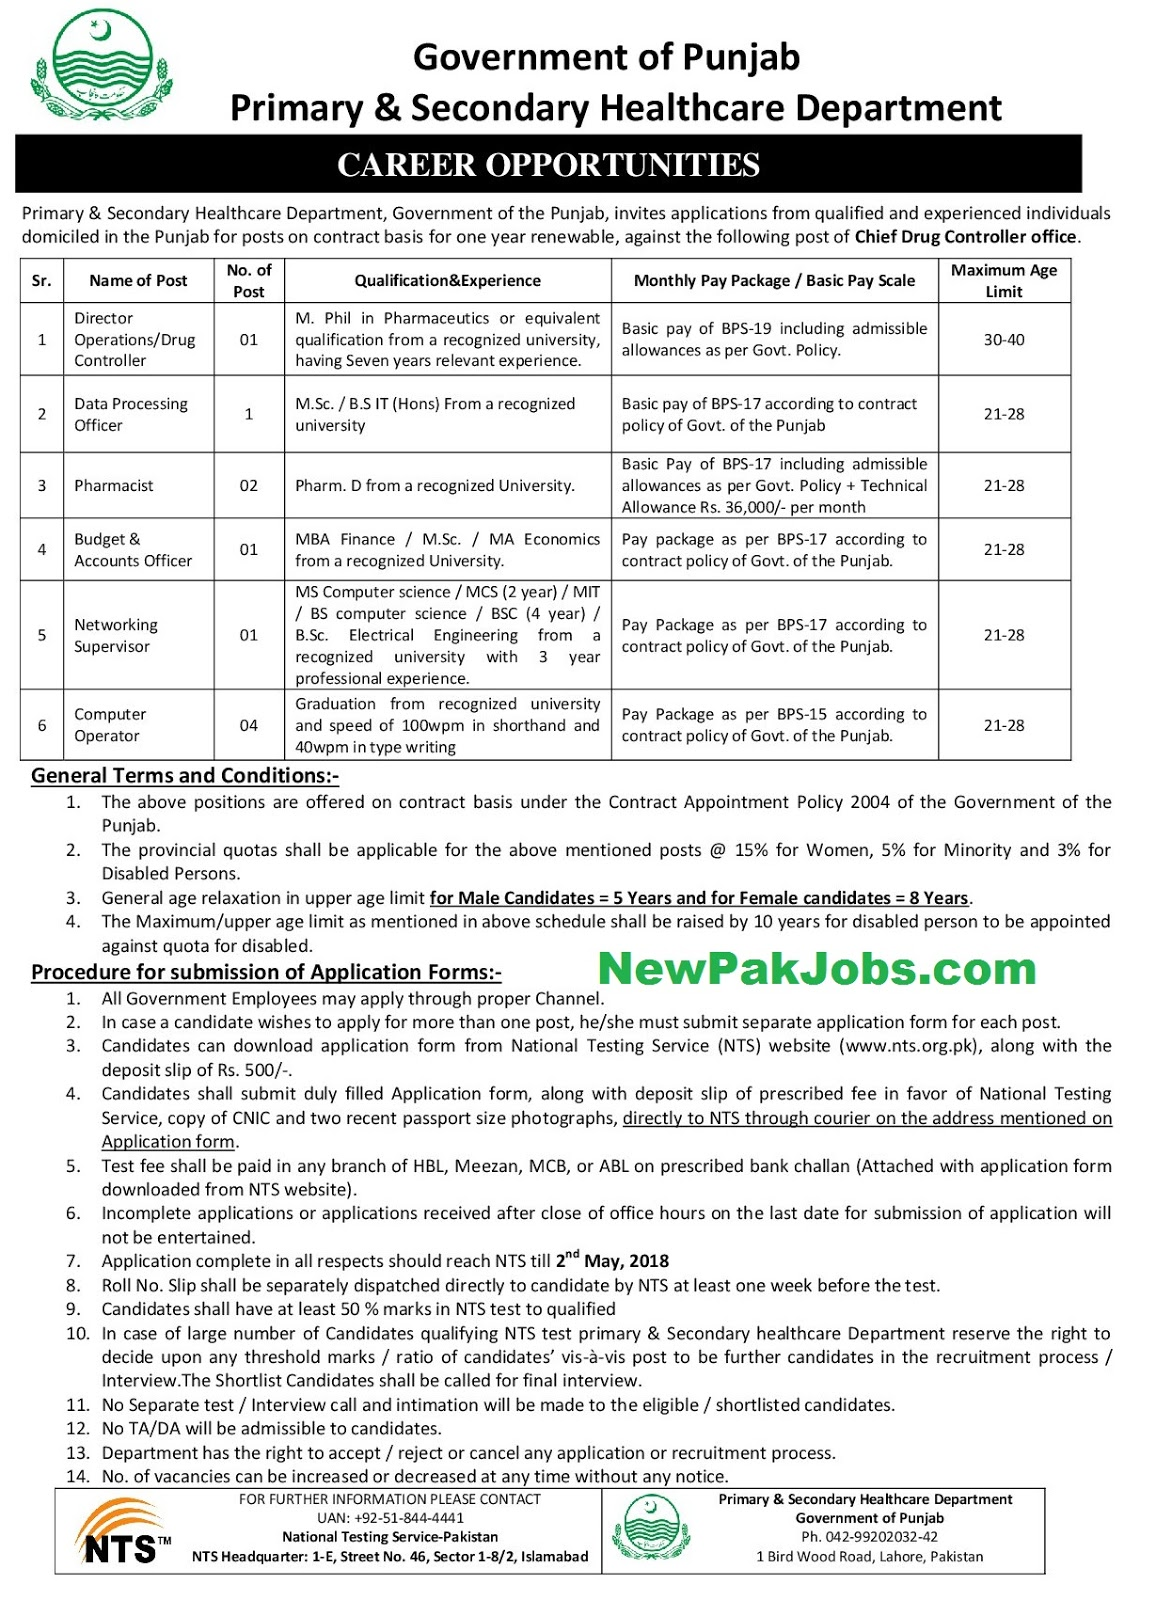 Primary and Secondary Healthcare Department Latest NTS Jobs 2018 Adv. 2